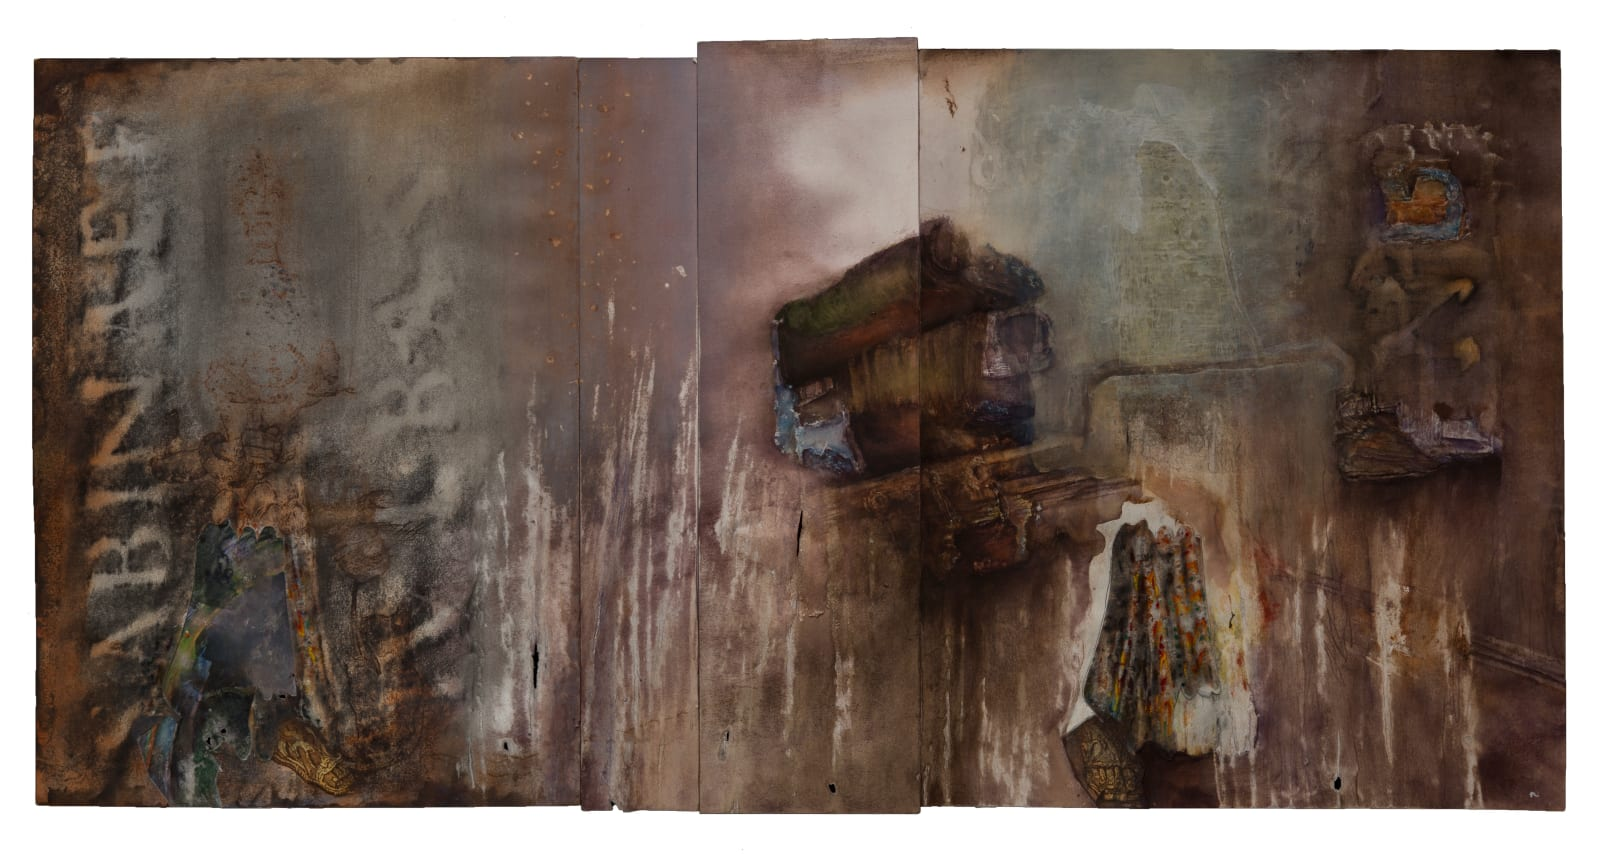 Liminatus Milosz, 2019 - 2020 Watercolor acrylic, ink, Conté crayon, graphite, and charcoal on pieced paper. 18.75 x 38.25 in. (TM 33) $7,500